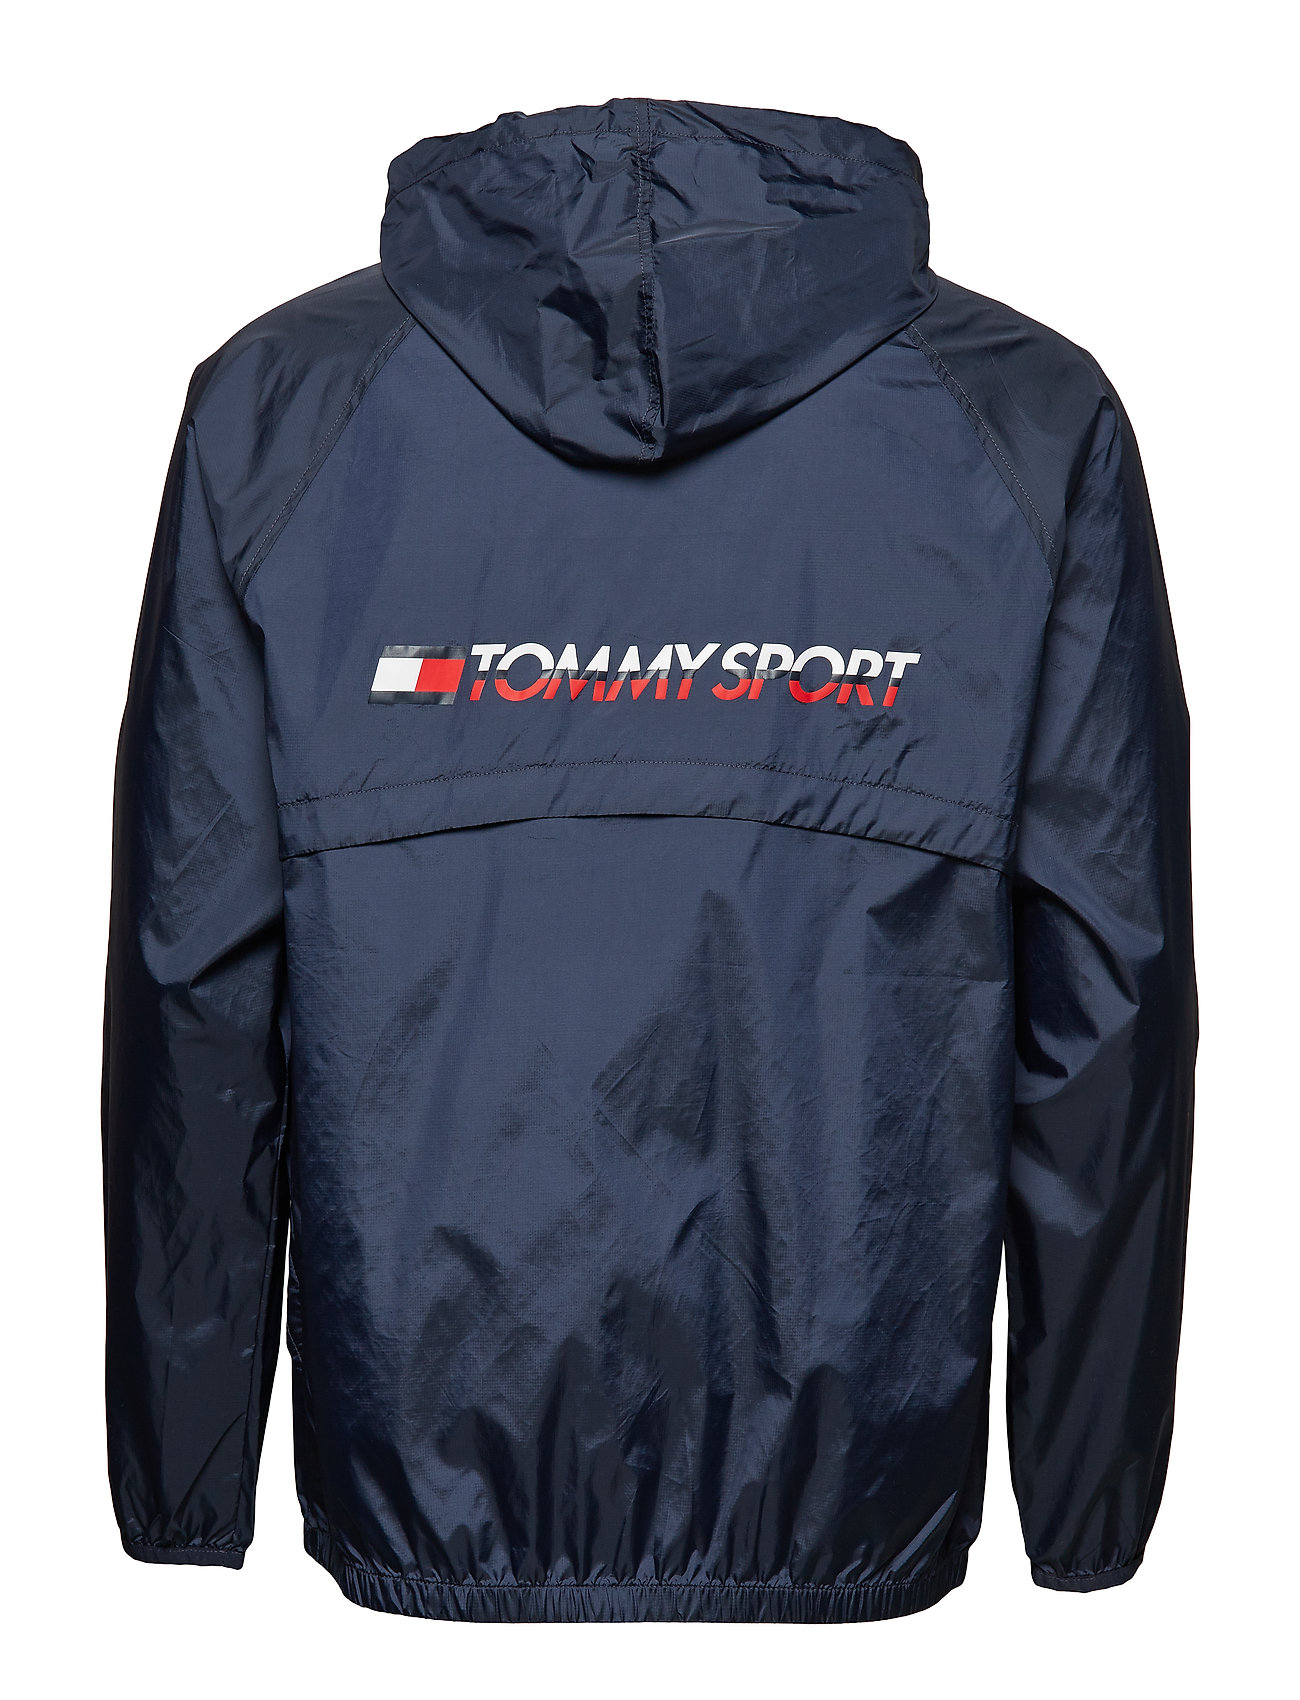 Windbreaker Windbreaker Windbreaker Sport Logosport Back NavyTommy NavyTommy Back Sport Logosport PiTkZOXu